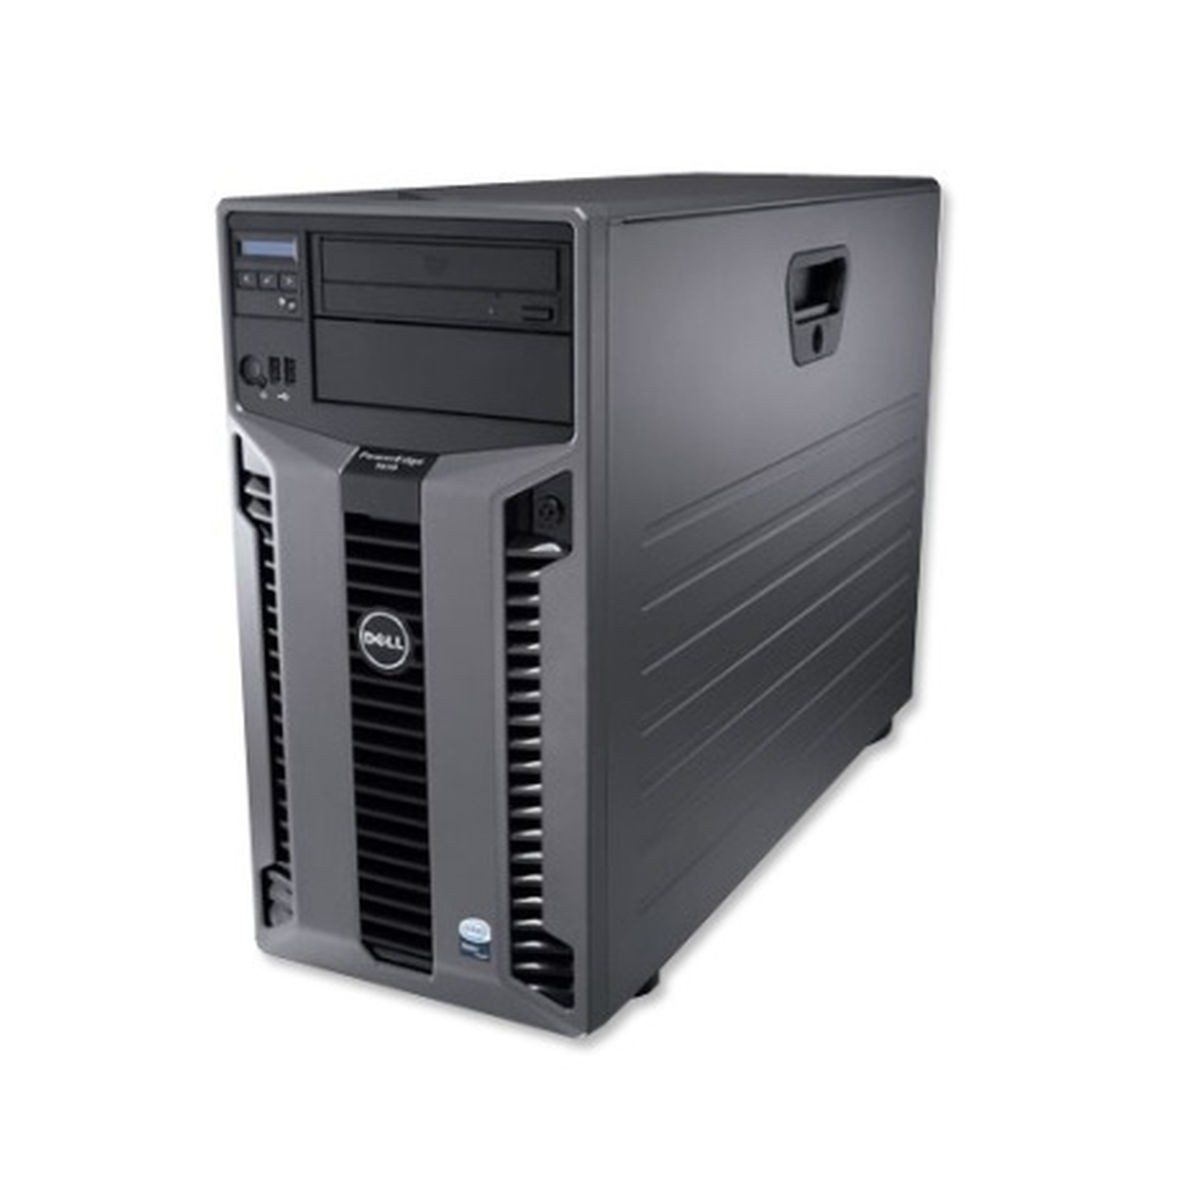 ZASILACZ 650W HP PROLIANT ML150 G5 459558-001